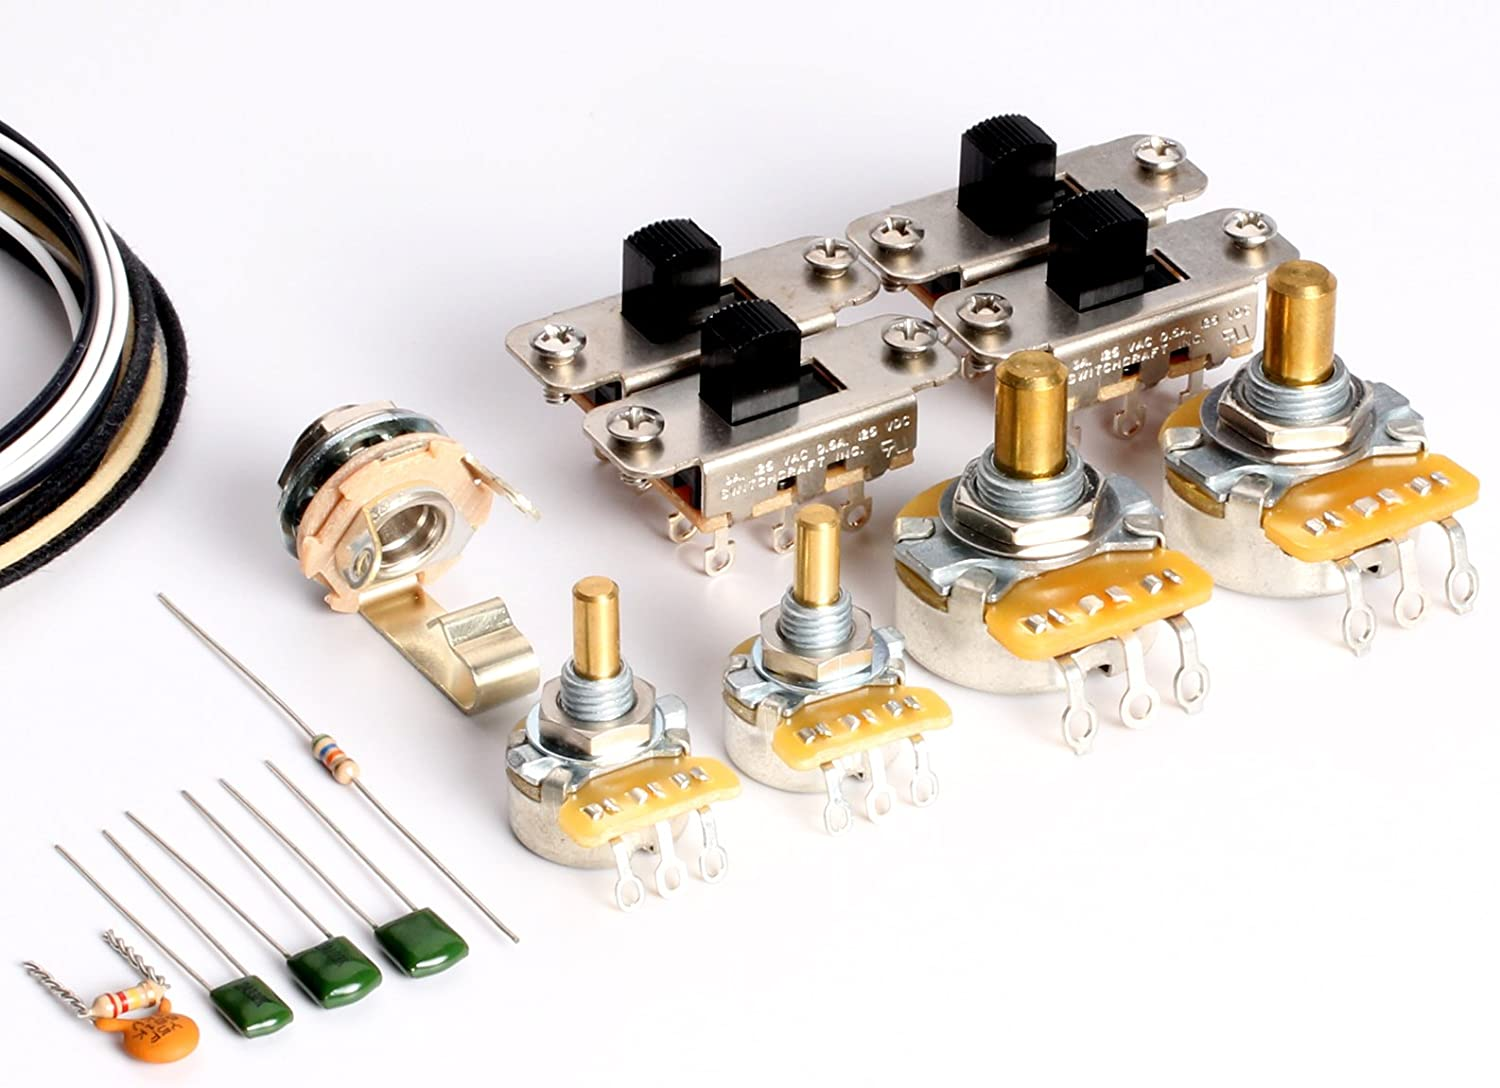 [SCHEMATICS_44OR]  Amazon.com: ToneShaper Guitar Wiring Kit, For Fender Jaguar: Musical  Instruments | Fender Jaguar Wiring |  | Amazon.com